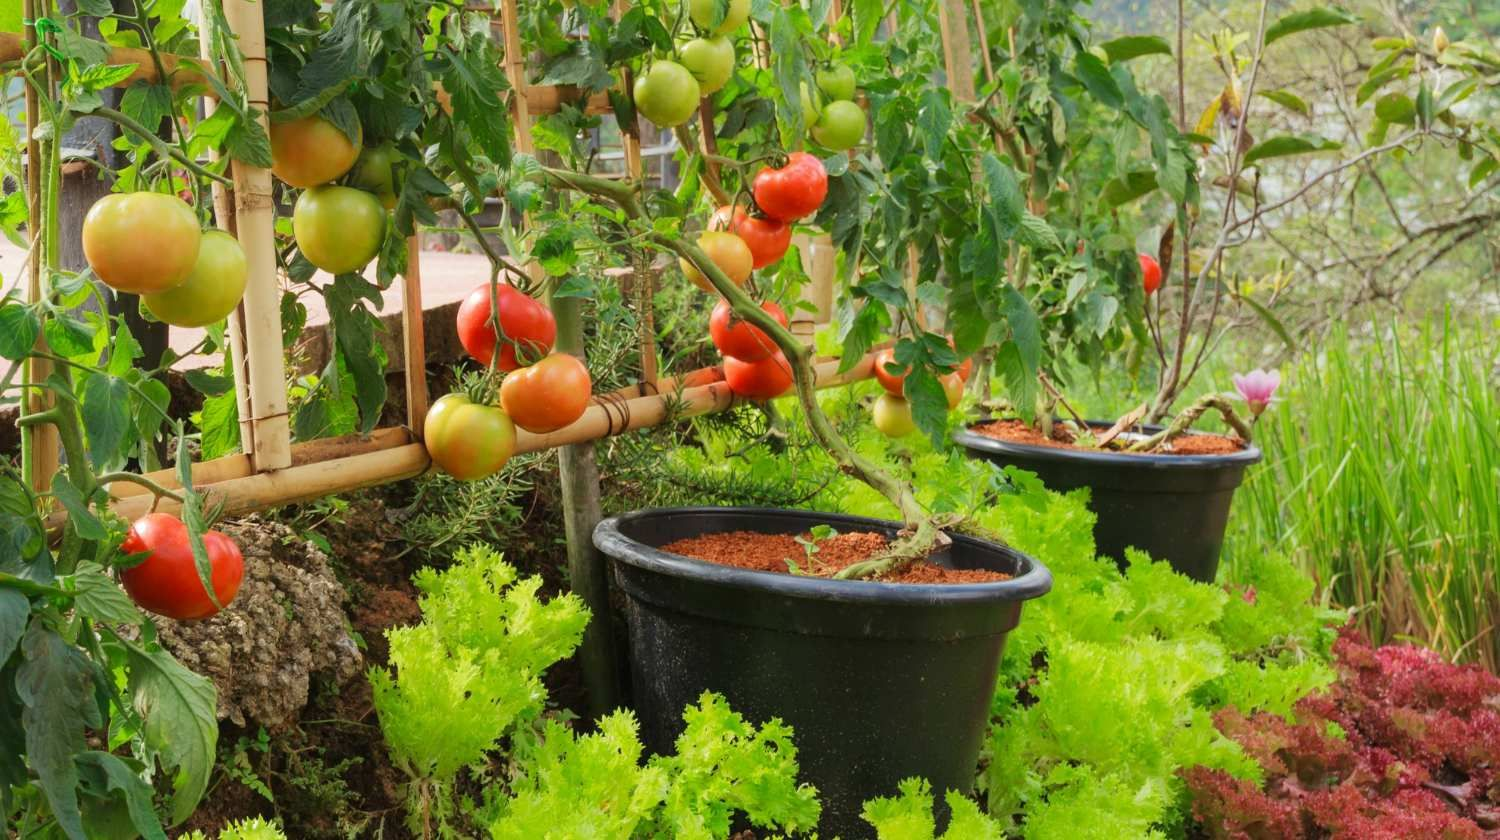 7 Secrets To Growing Fruit Trees In Containers Homesteading Starting A Vegetable Garden Miniature Fruit Trees Planting Vegetables